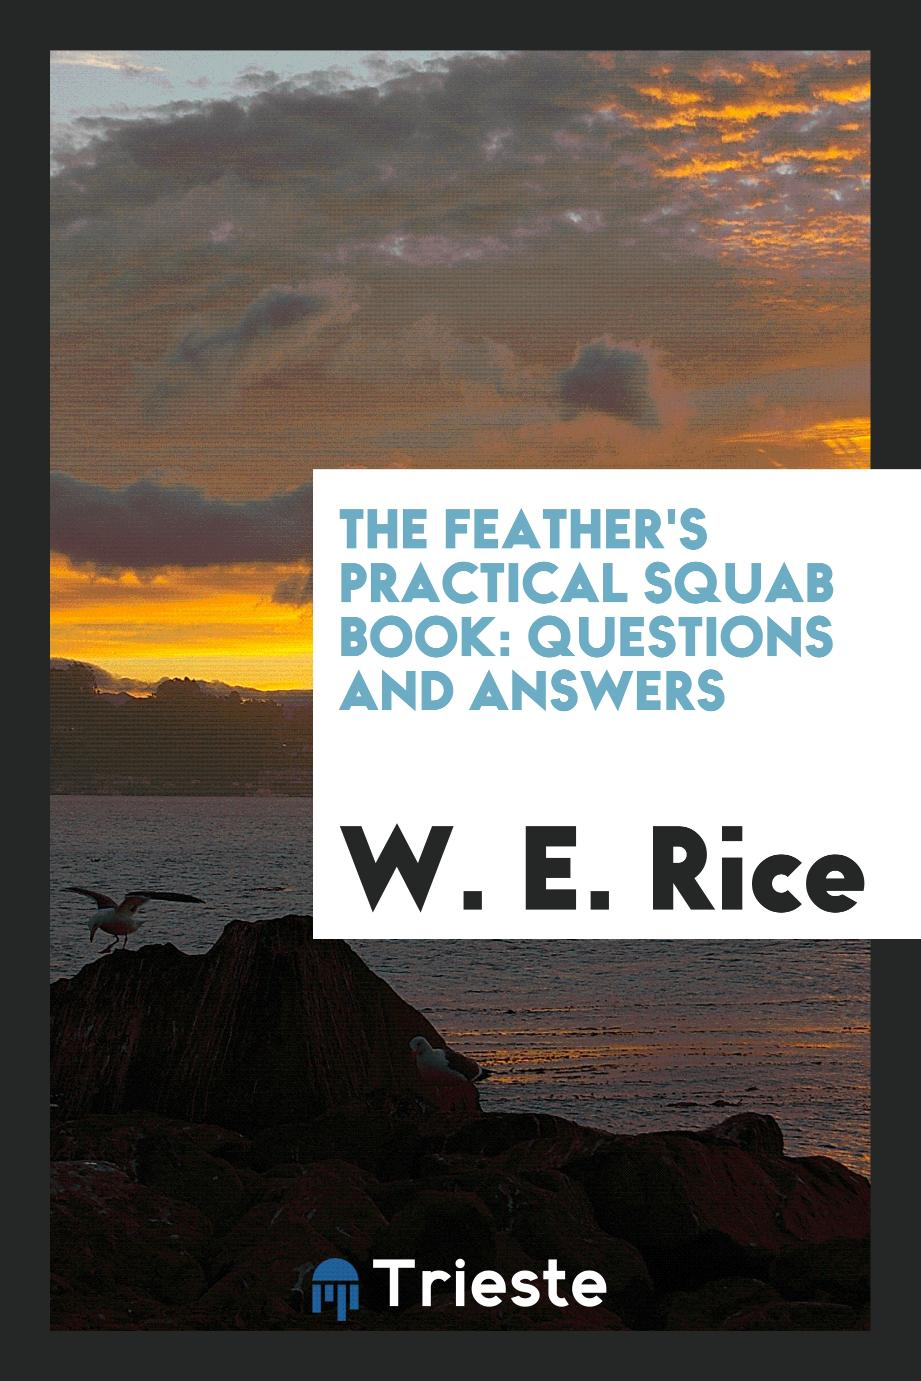 The Feather's Practical Squab Book: Questions and Answers